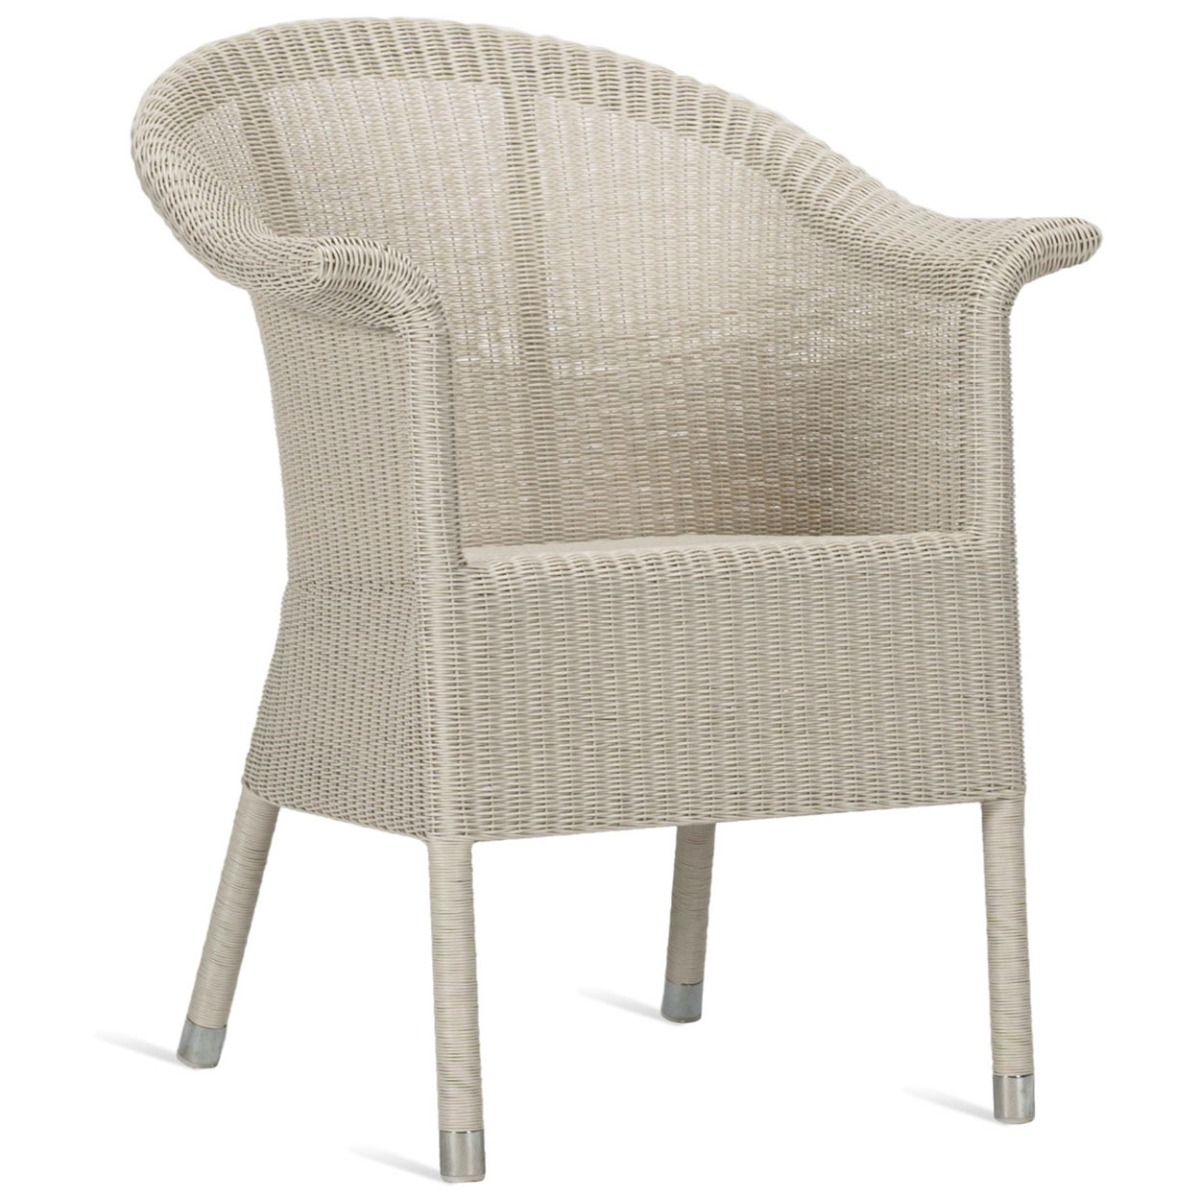 Vincent Sheppard Kenzo Dining Chair? Wicker Tuinstoel ? Old Lace ? Aluminium Frame